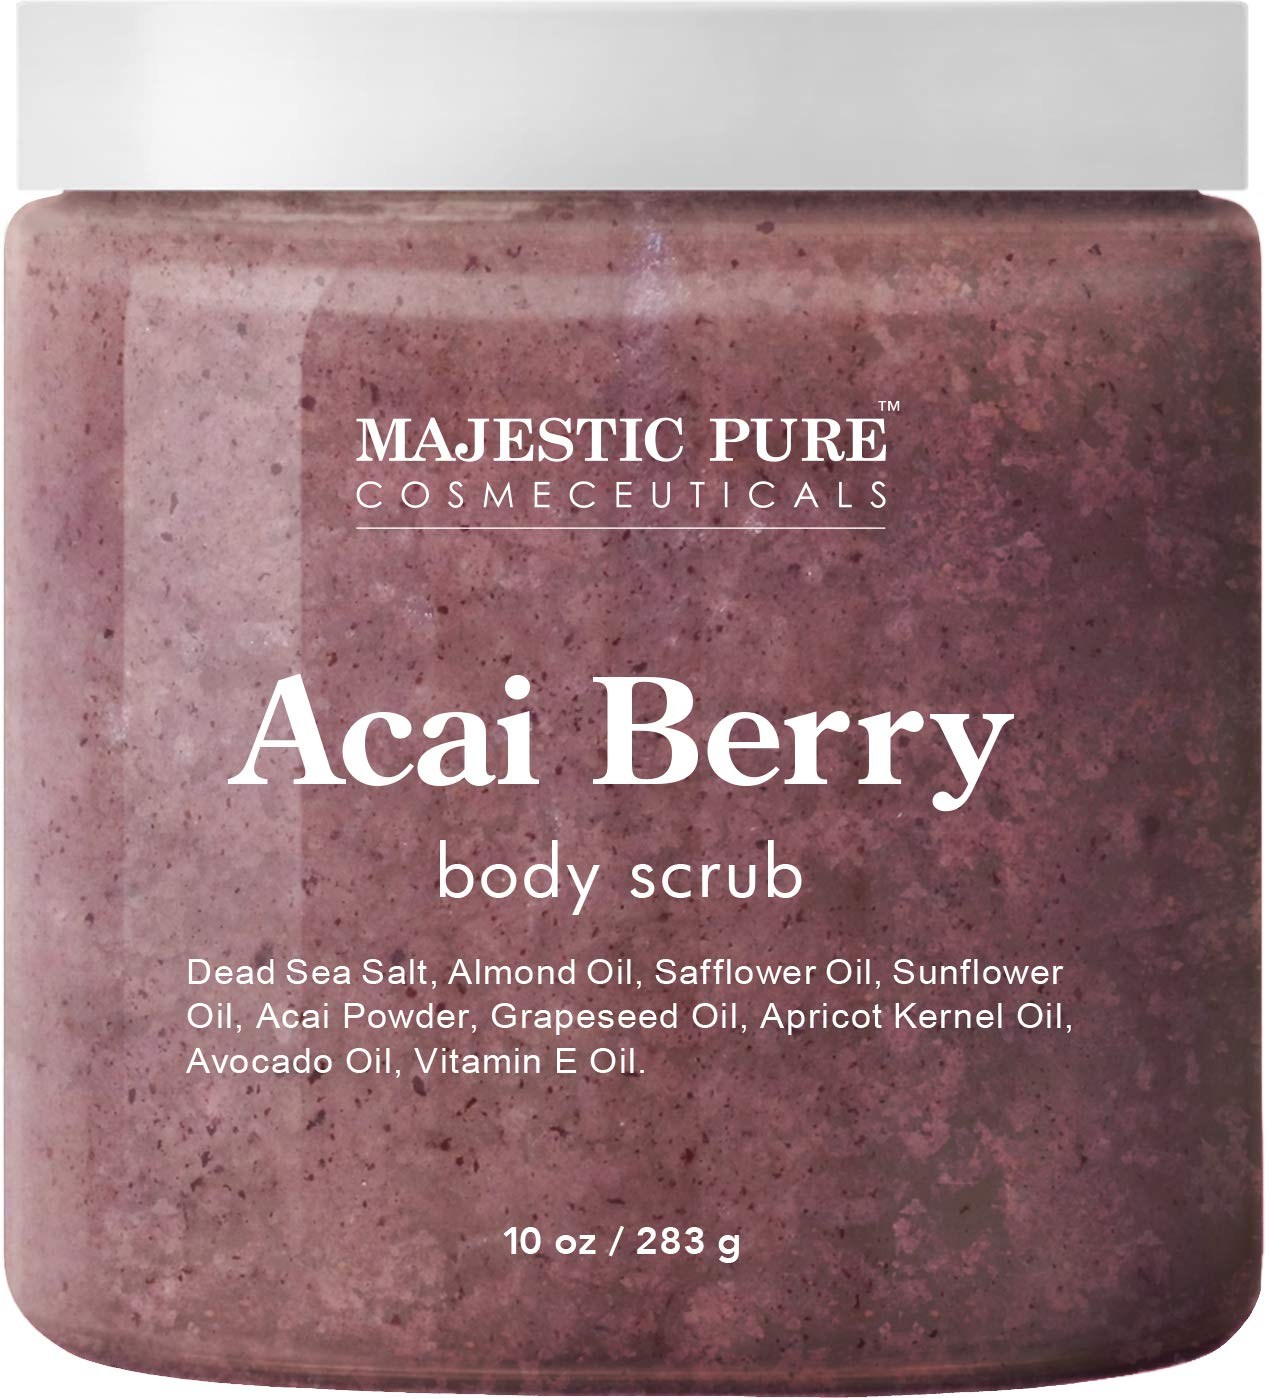 Majestic Pure Acai Berry Body Scrub - All Natural, Exfoliates, Moisturizes, and Nourishes Skin - Reduces the Appearance of Cellulite - 10 oz by Majestic Pure